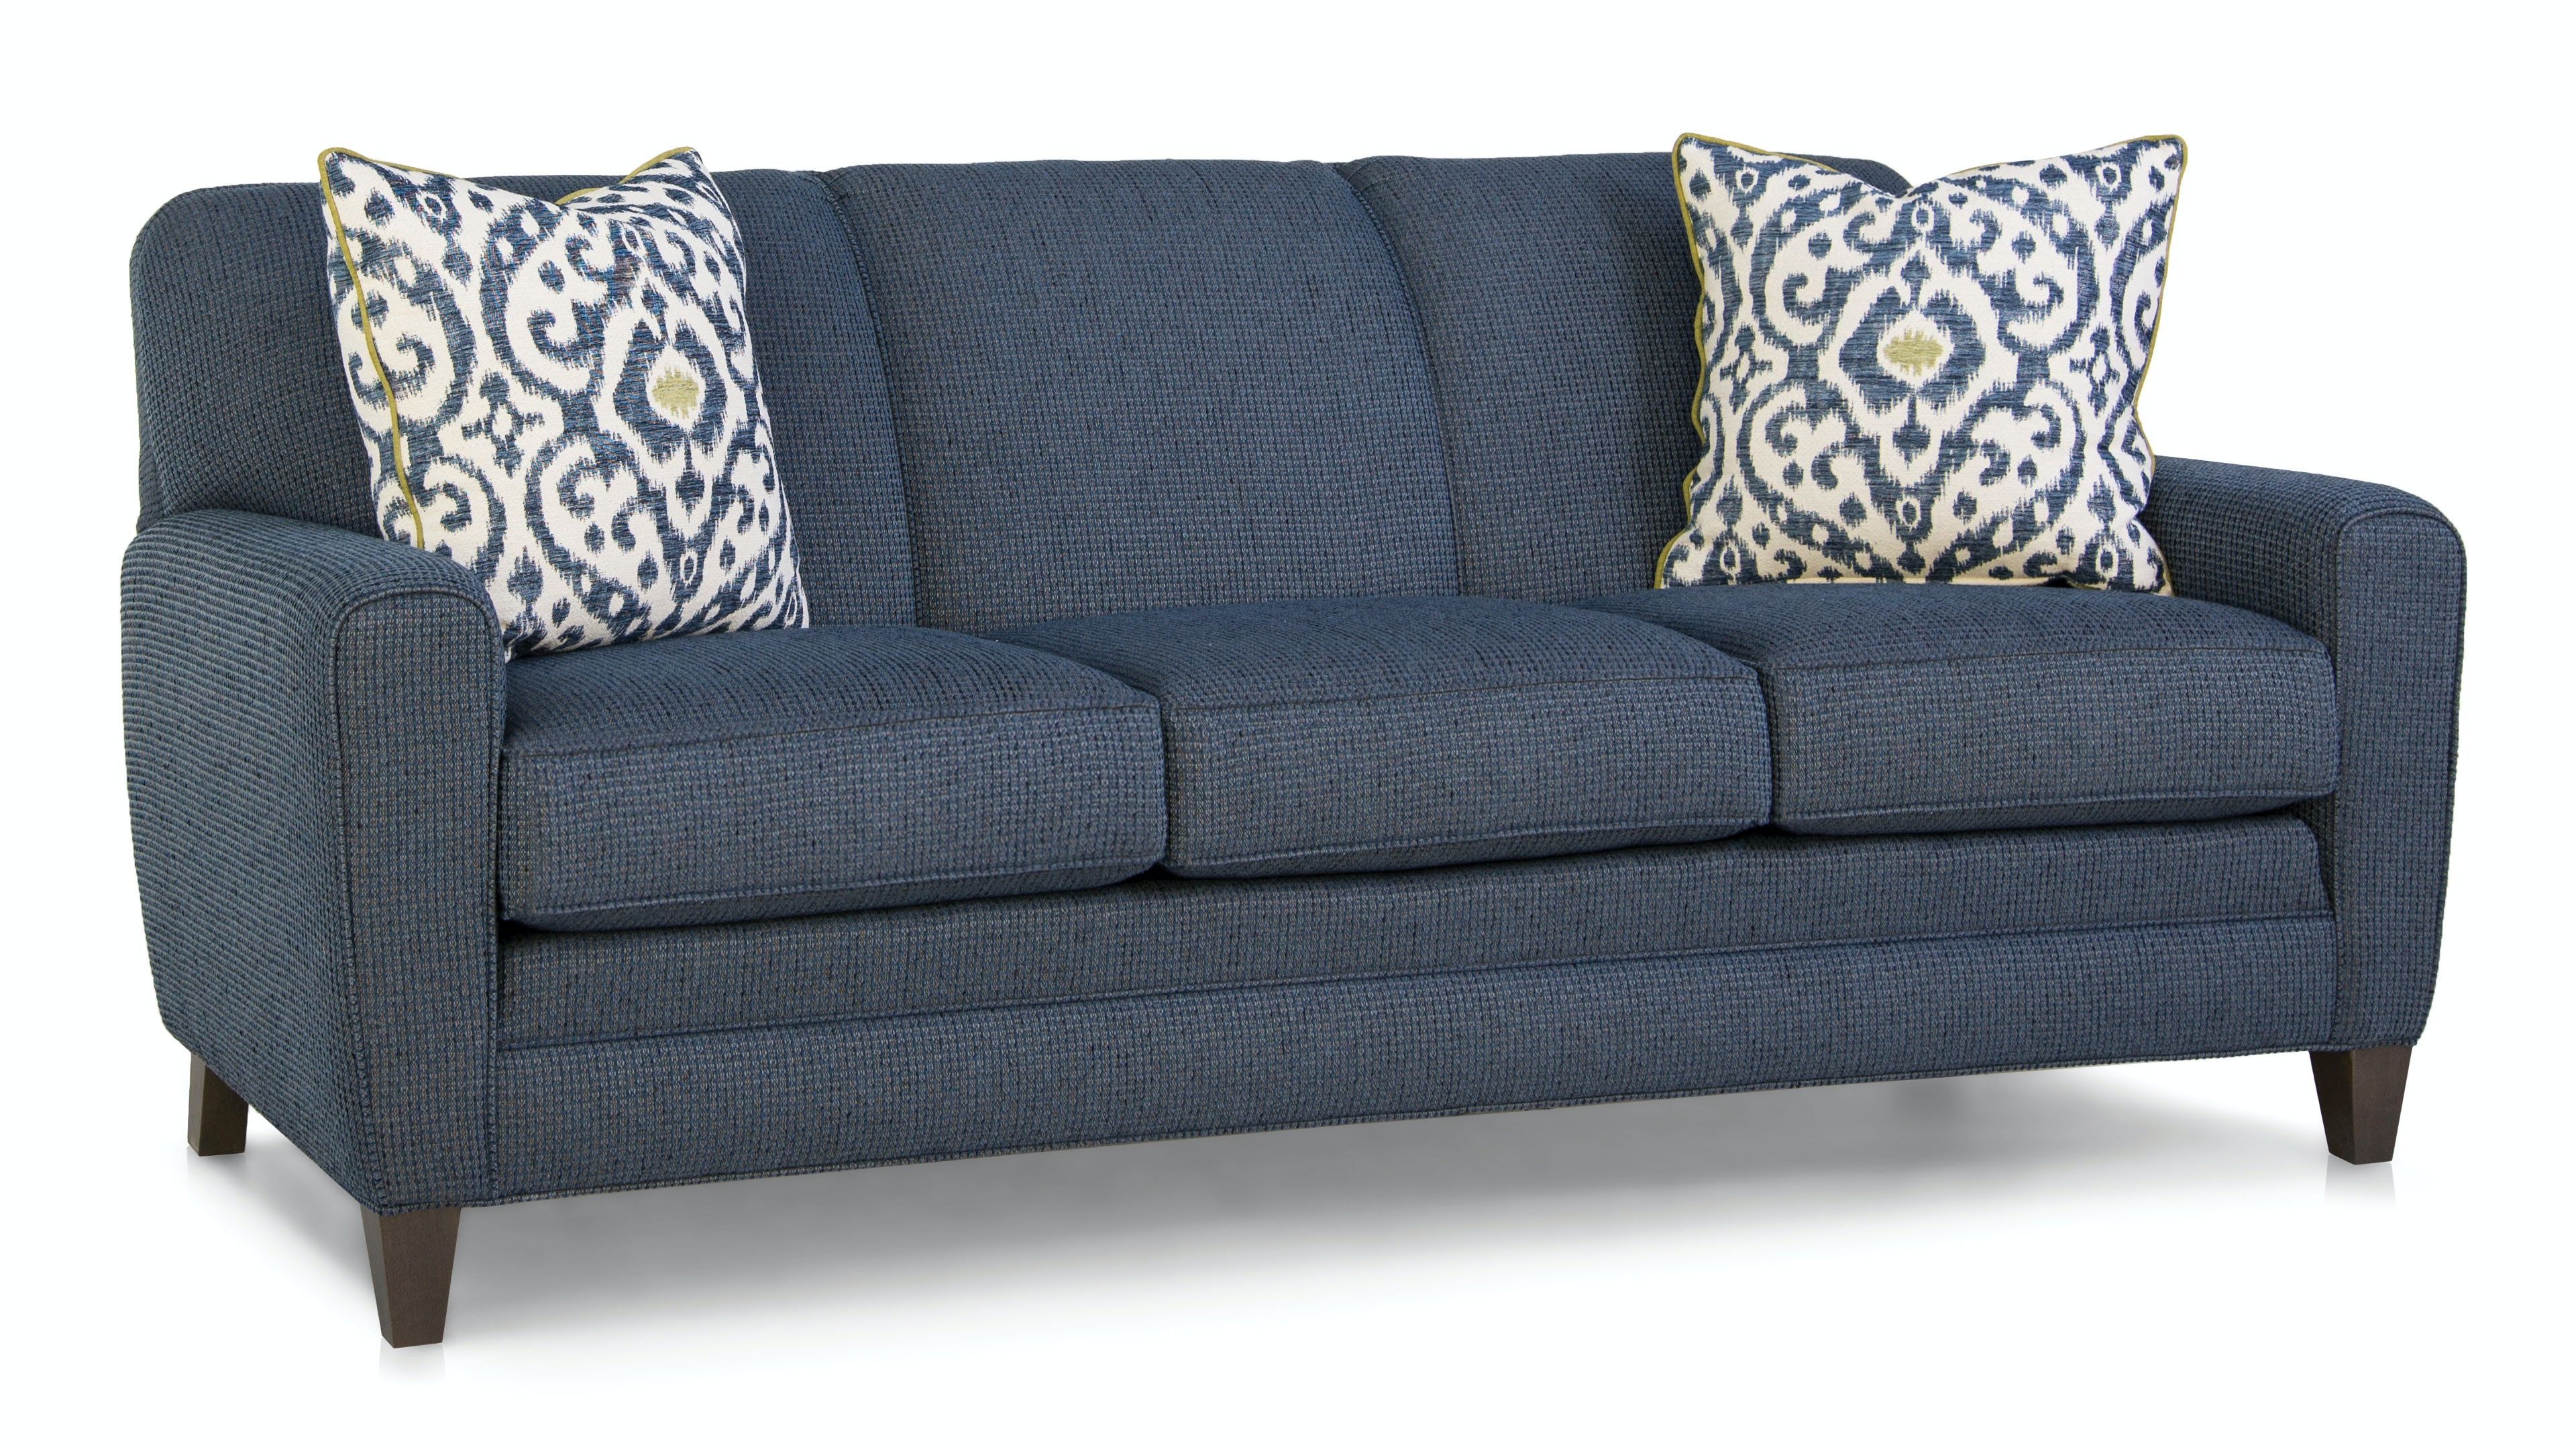 Smith Brothers Sofa 225 10